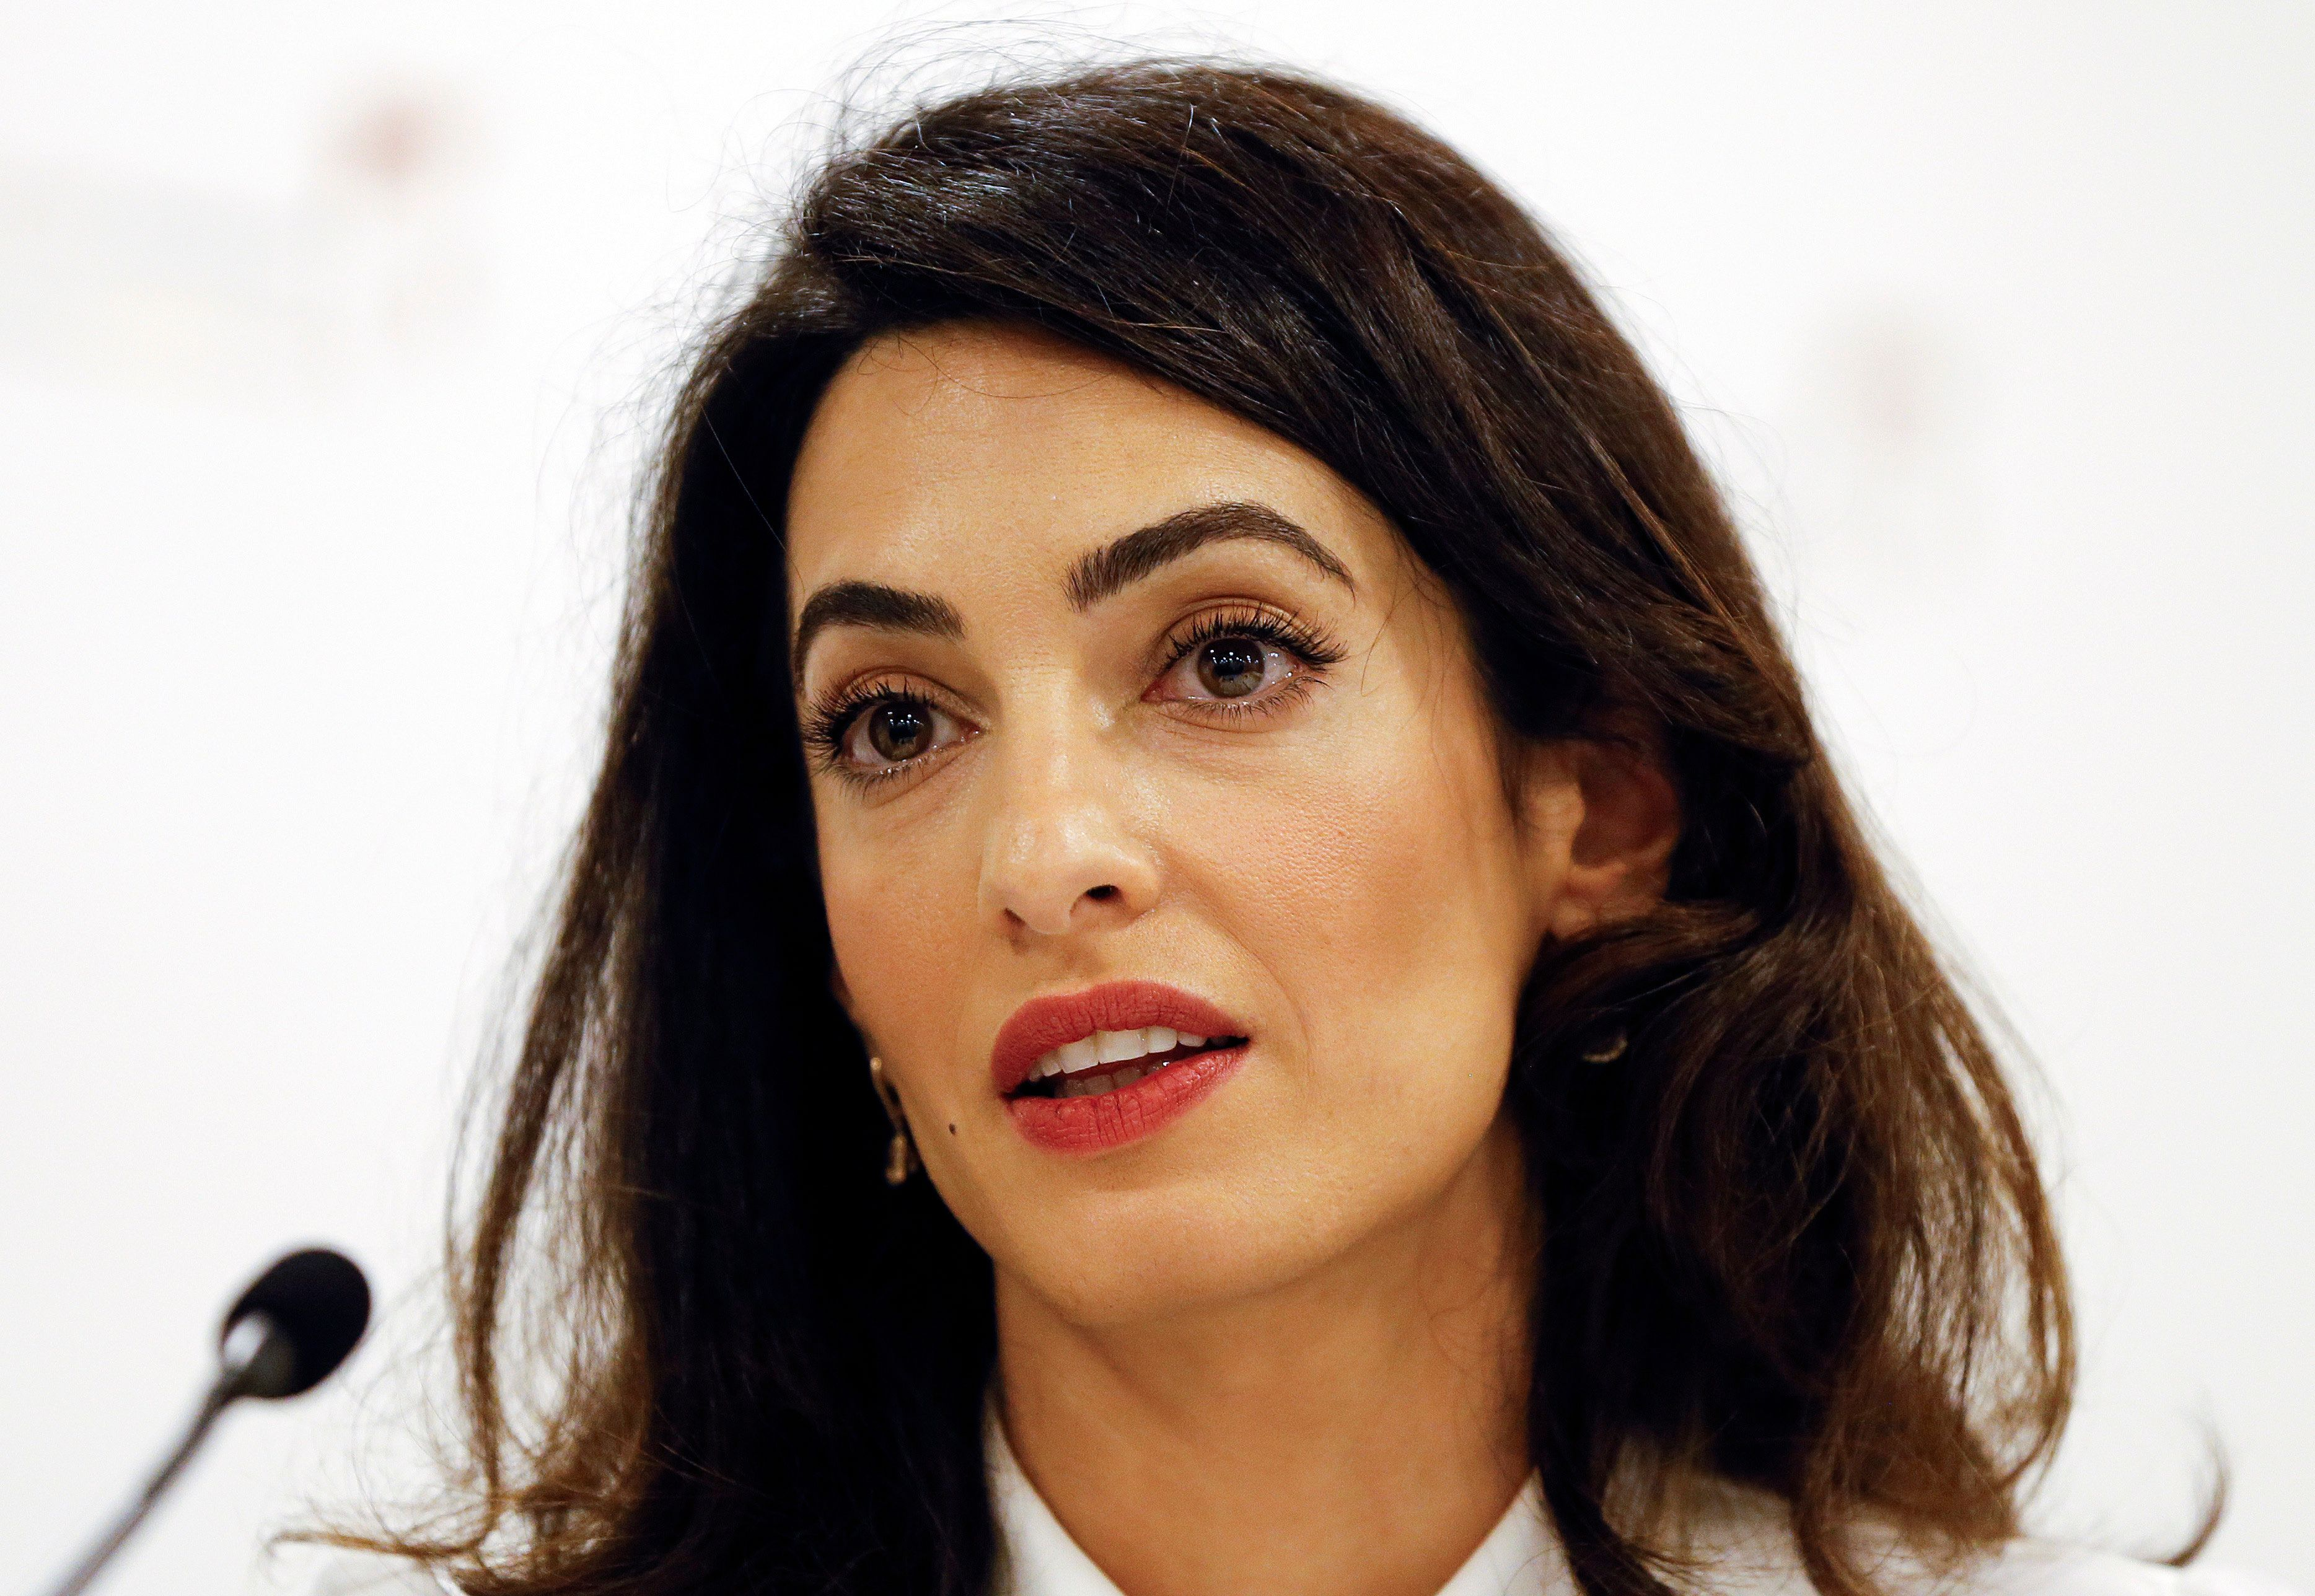 Amal Clooney Says Trump's Ideas 'Are Violations of International Human Rights